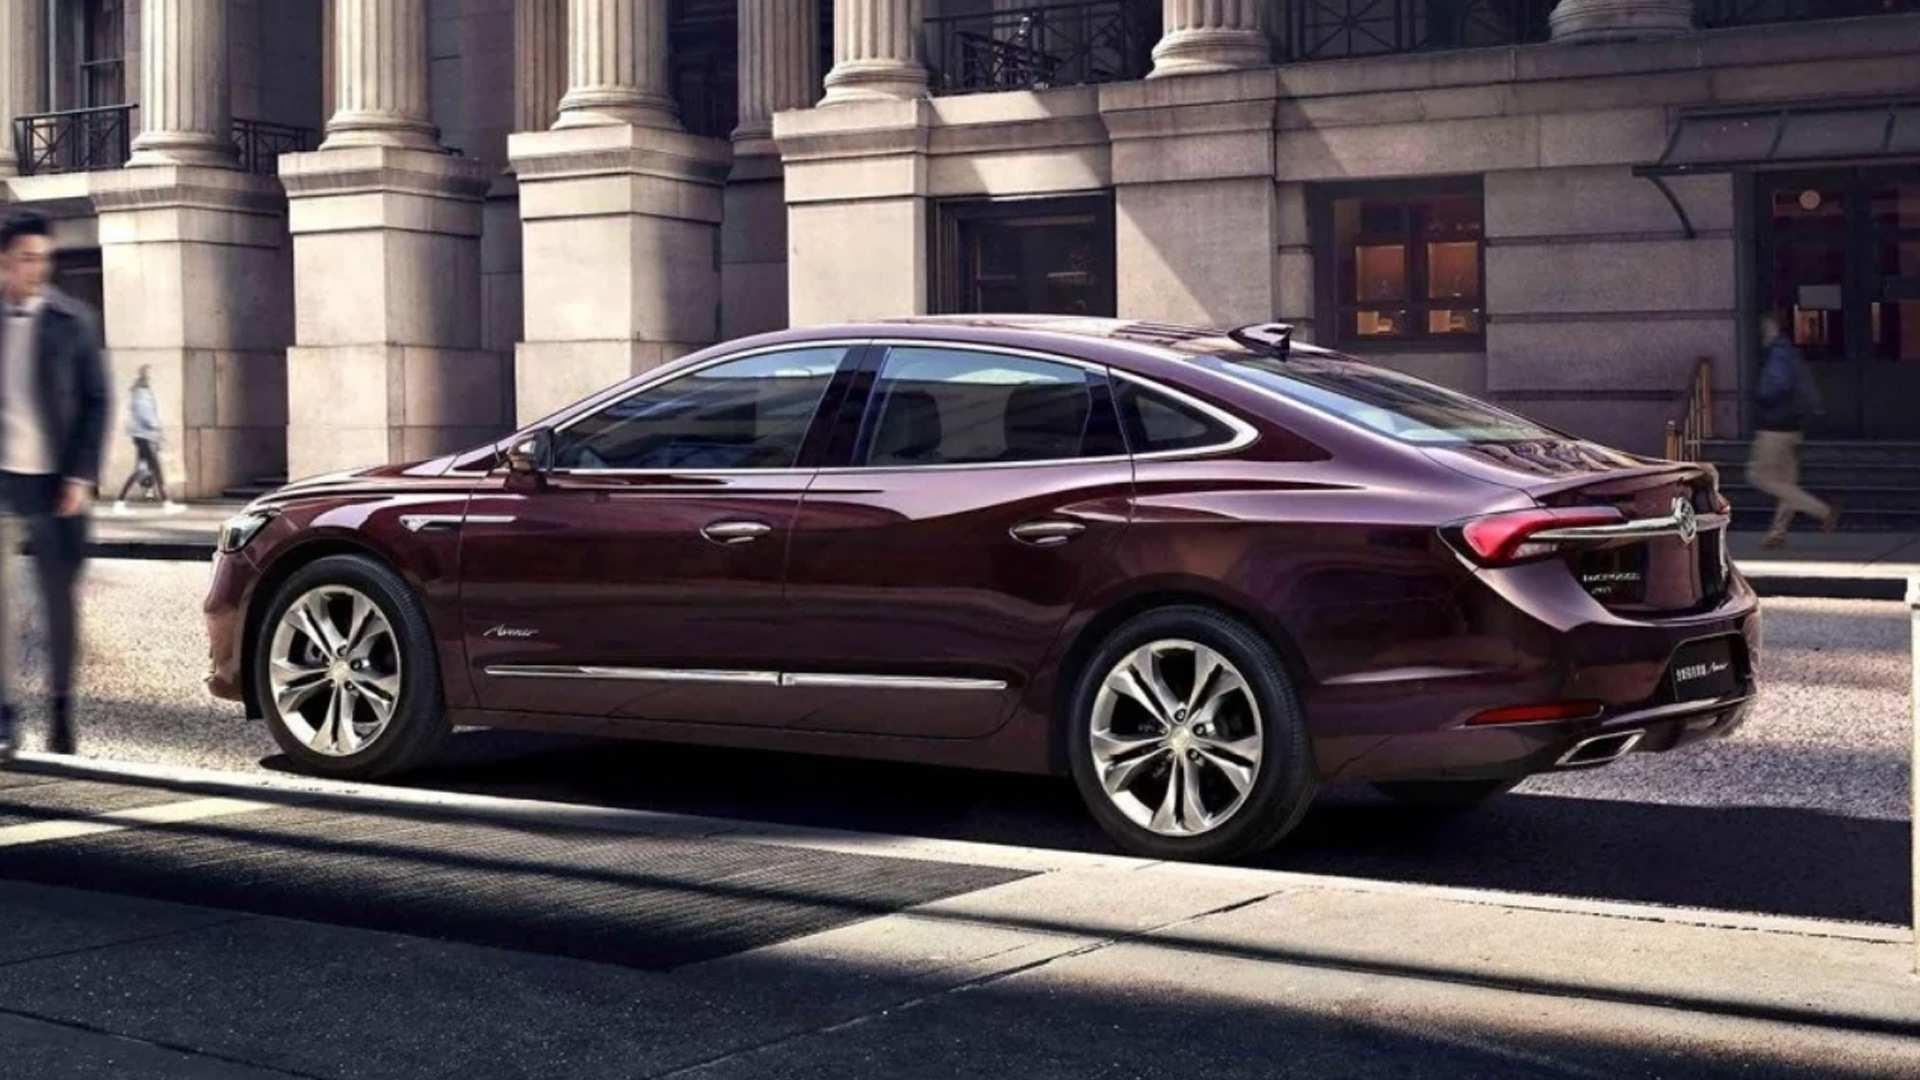 51 All New 2020 Buick Lacrosse China Specs And Review